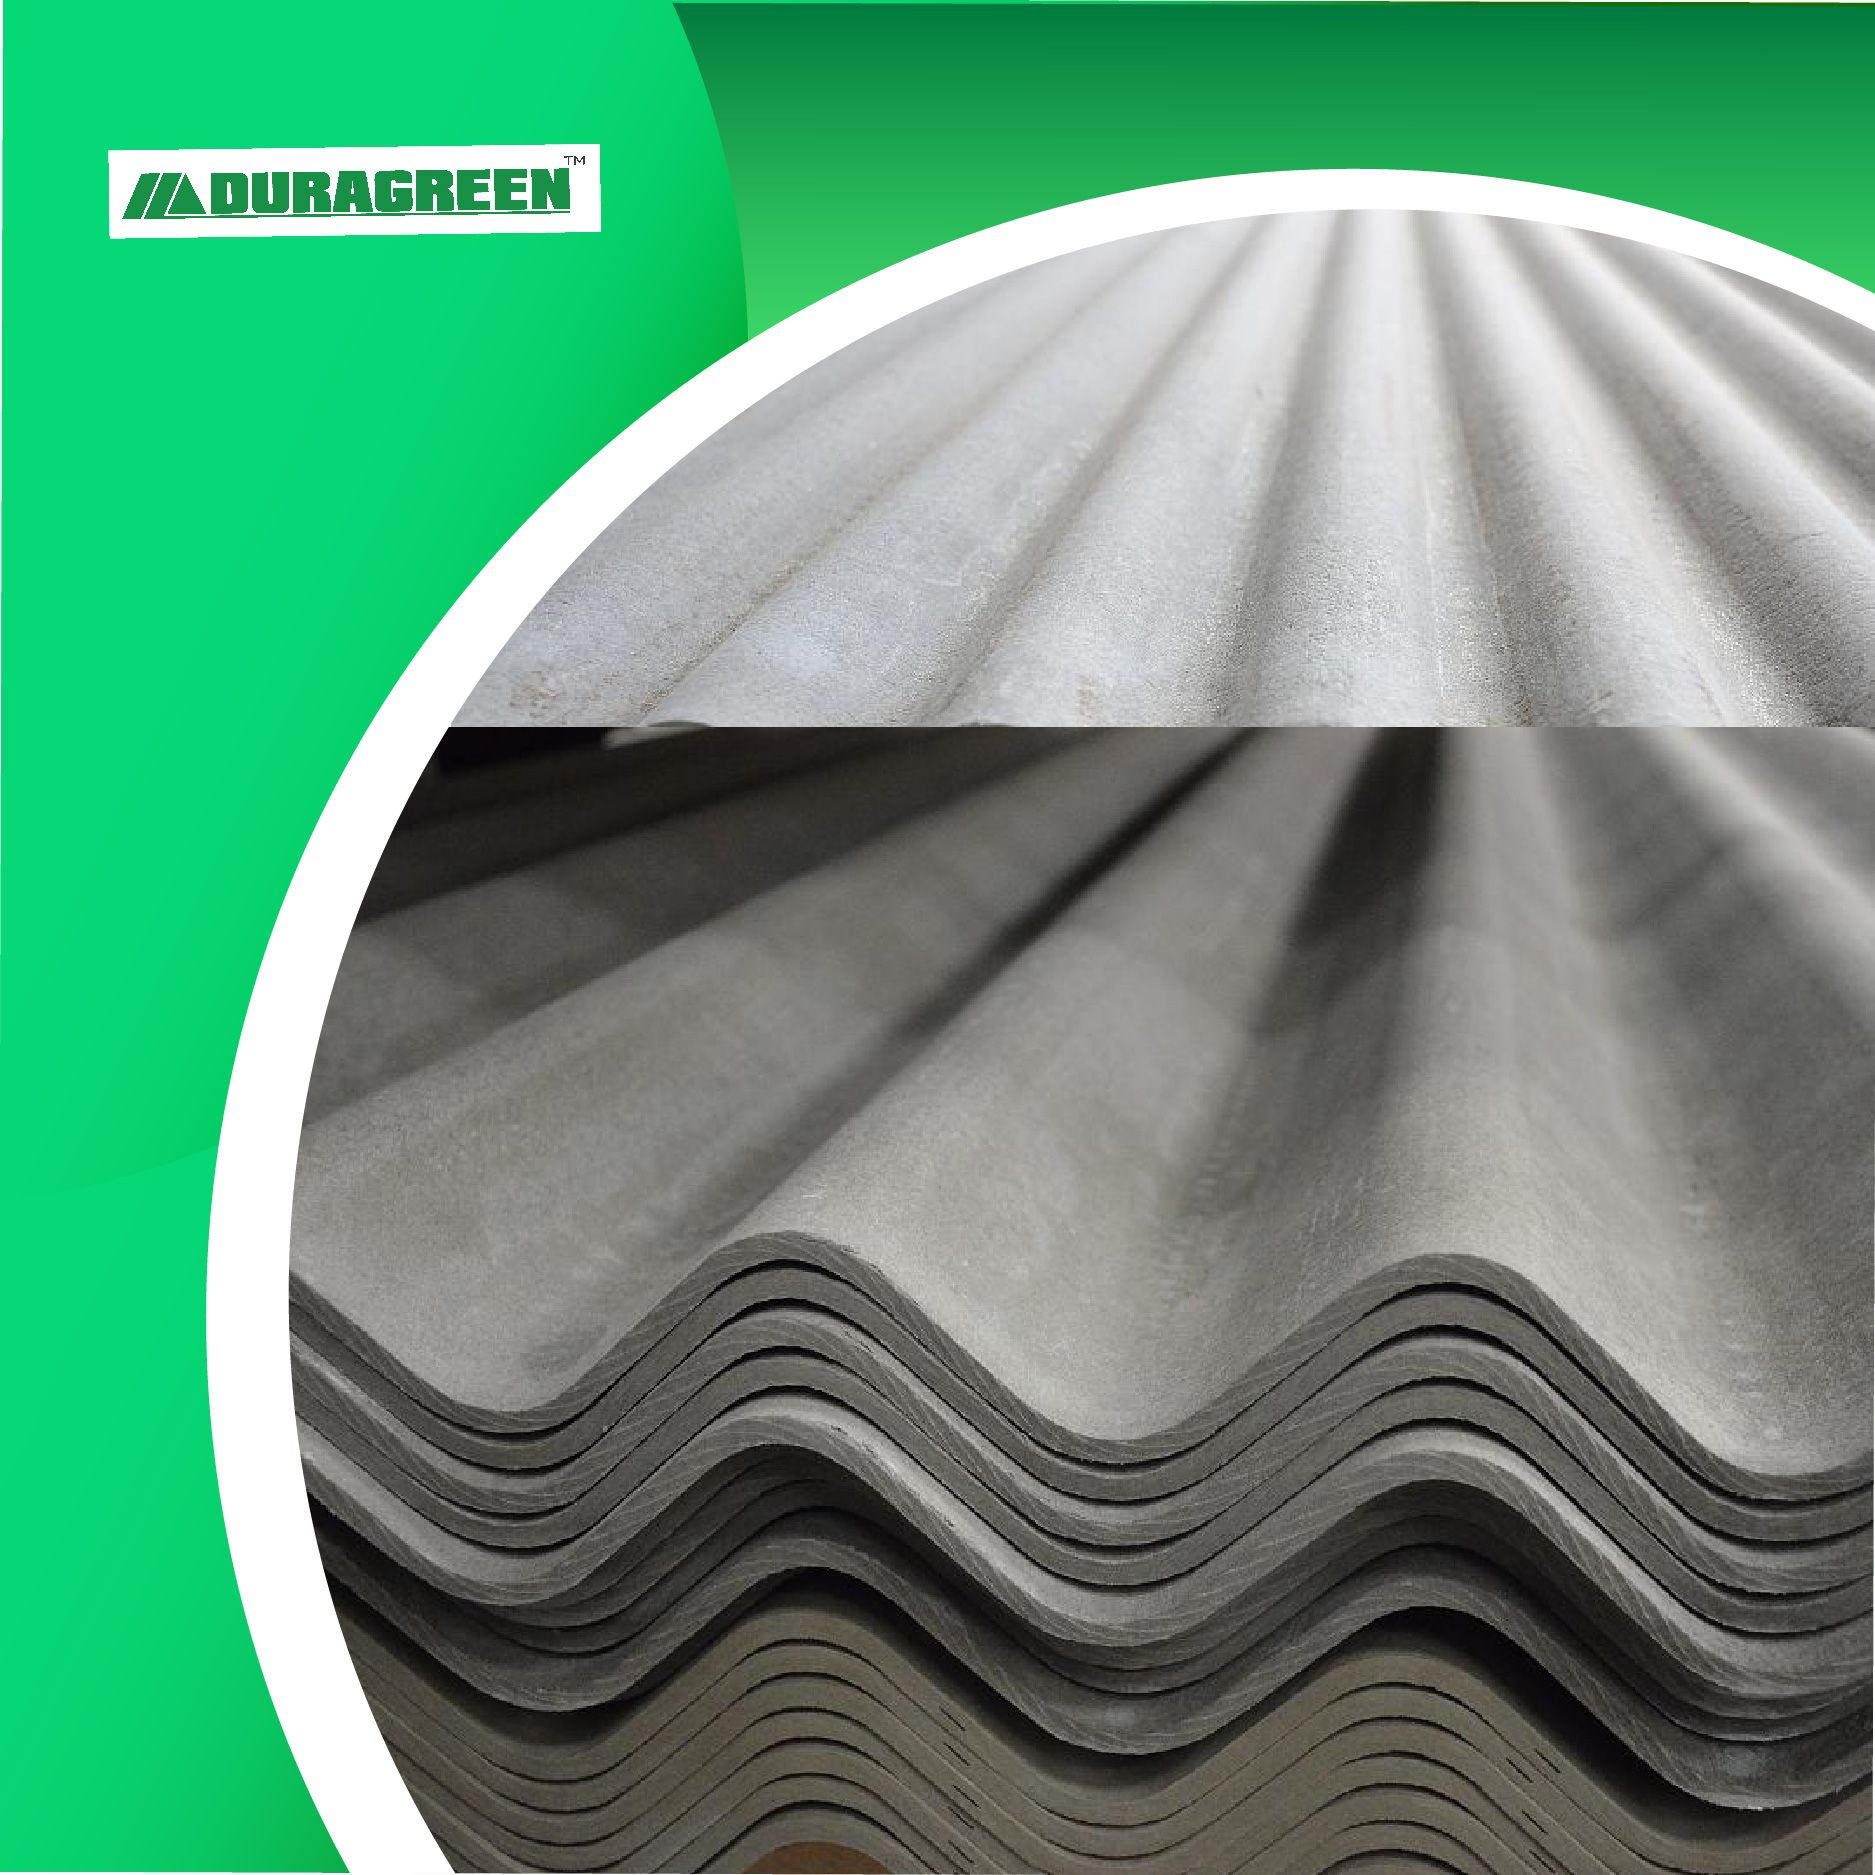 Duragreen Fiber Cement Corrugated Roofing Sheets In 2020 Corrugated Roofing Fiber Cement Board Roofing Sheets